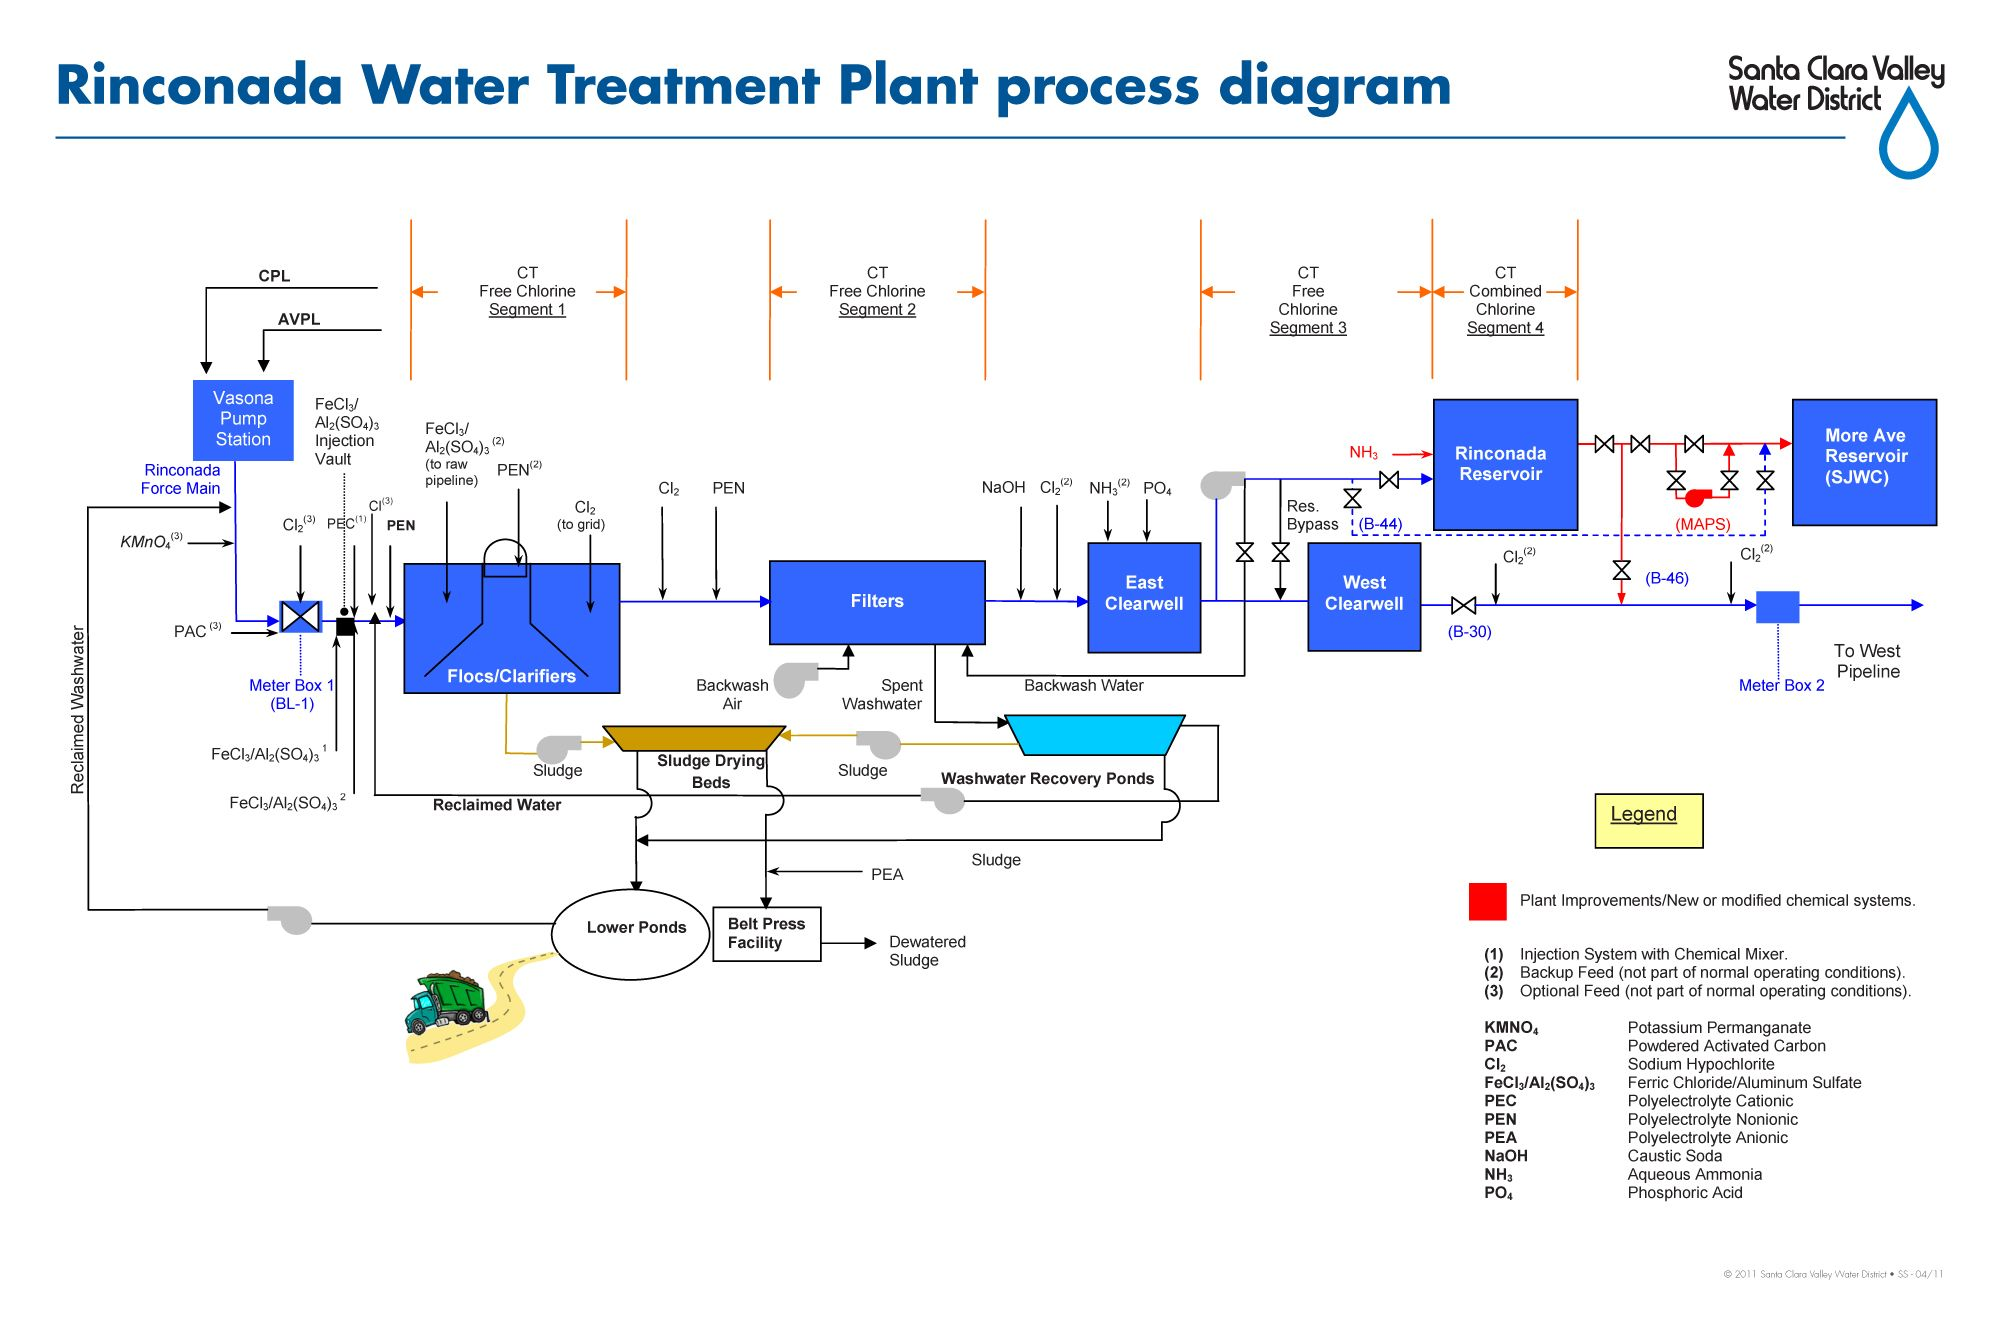 small resolution of rinconada water treatment plant process diagram water treatment rh pinterest com diagram of distilled water plant diagram of a water leaf plant